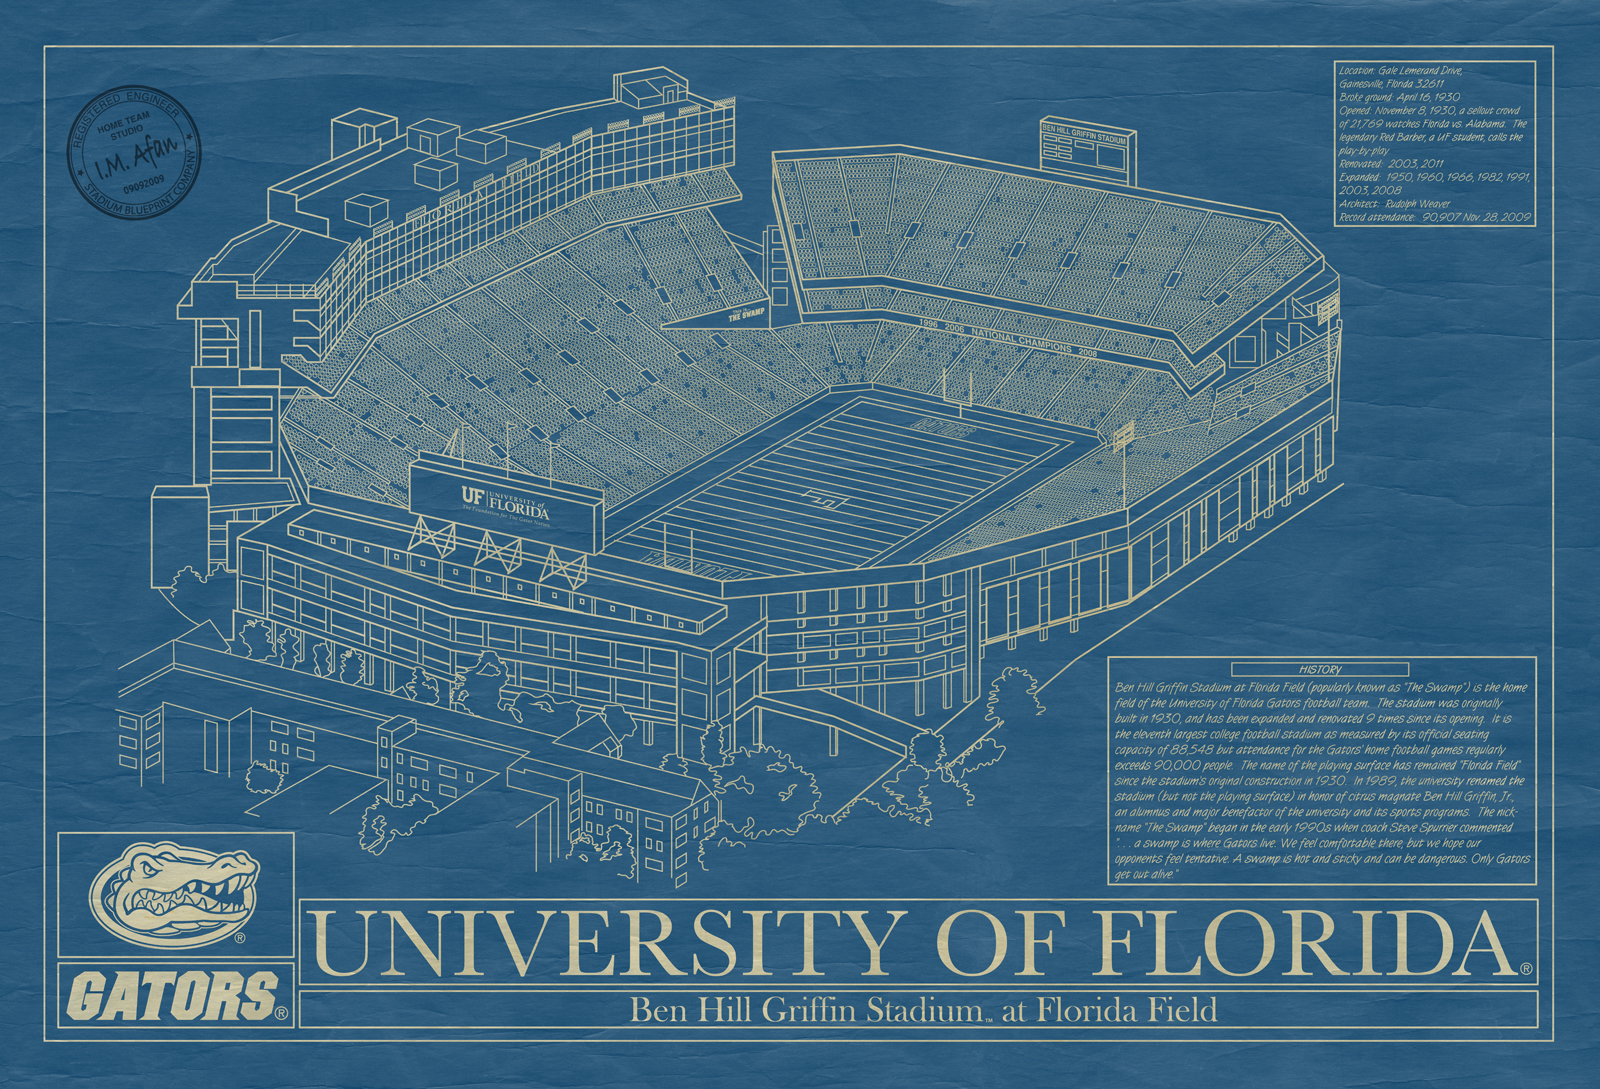 University of florida archives stadium blueprint company florida ben hill griffin stadium blueprint art malvernweather Image collections